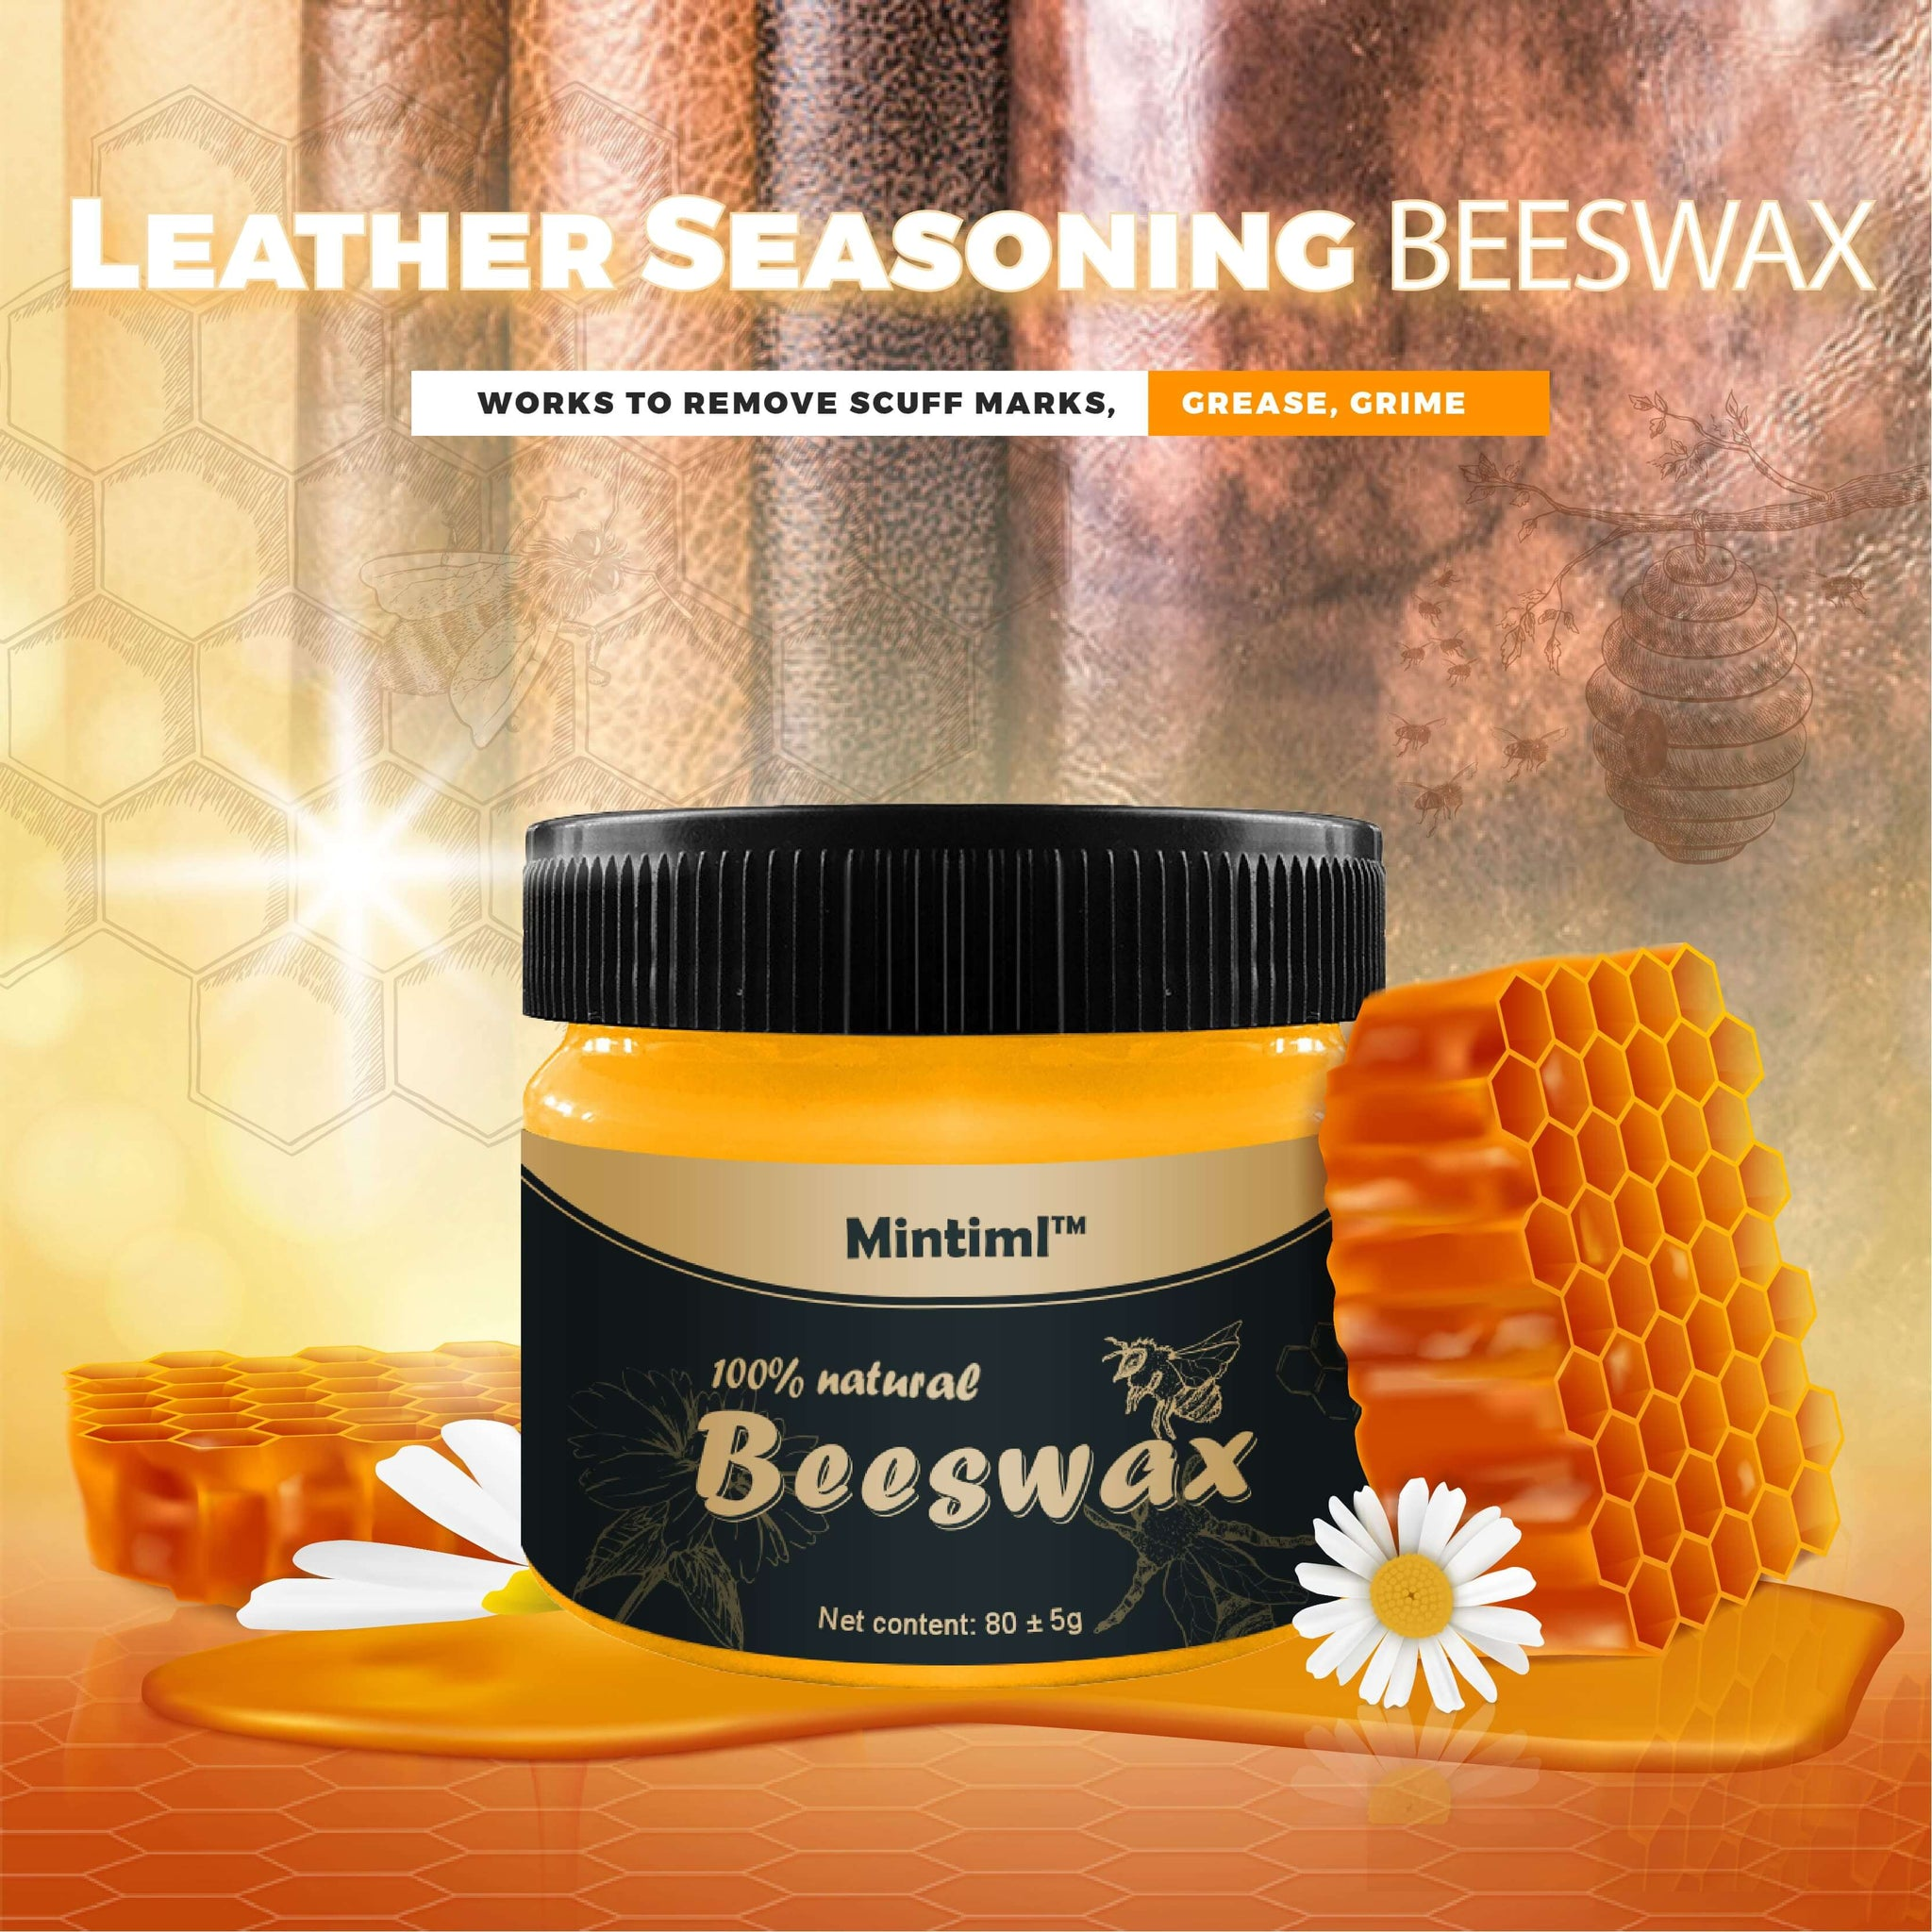 Leather Seasoning Beeswax(Limited Time Price)